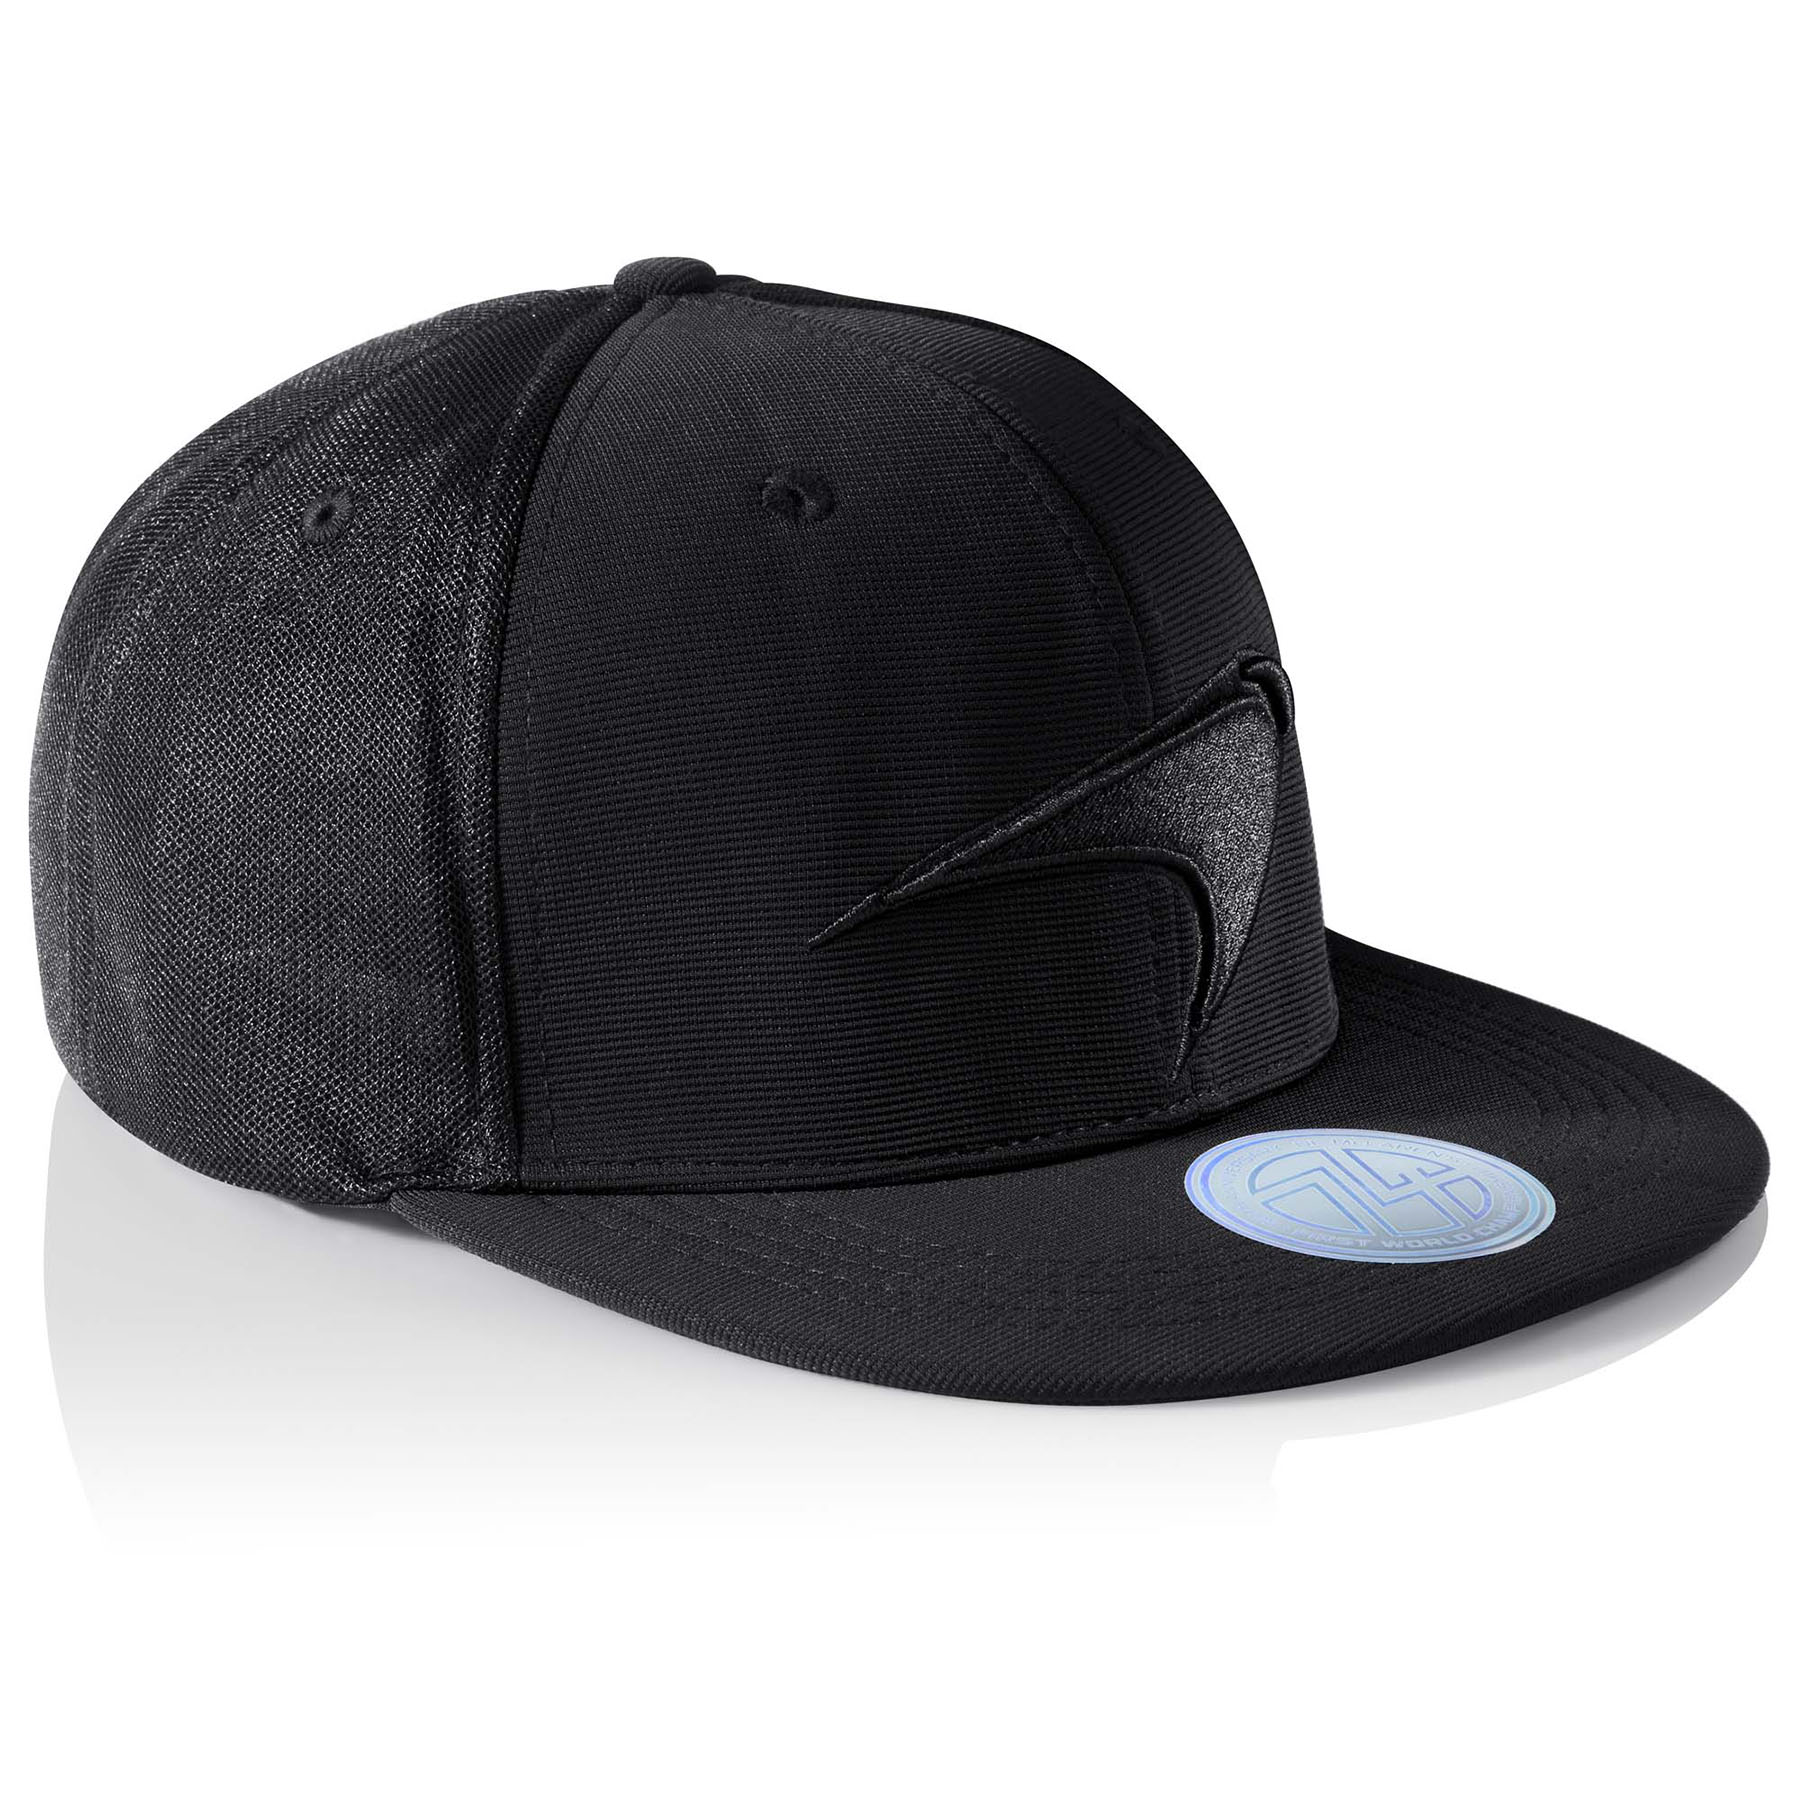 Team McLaren Fashion Cap